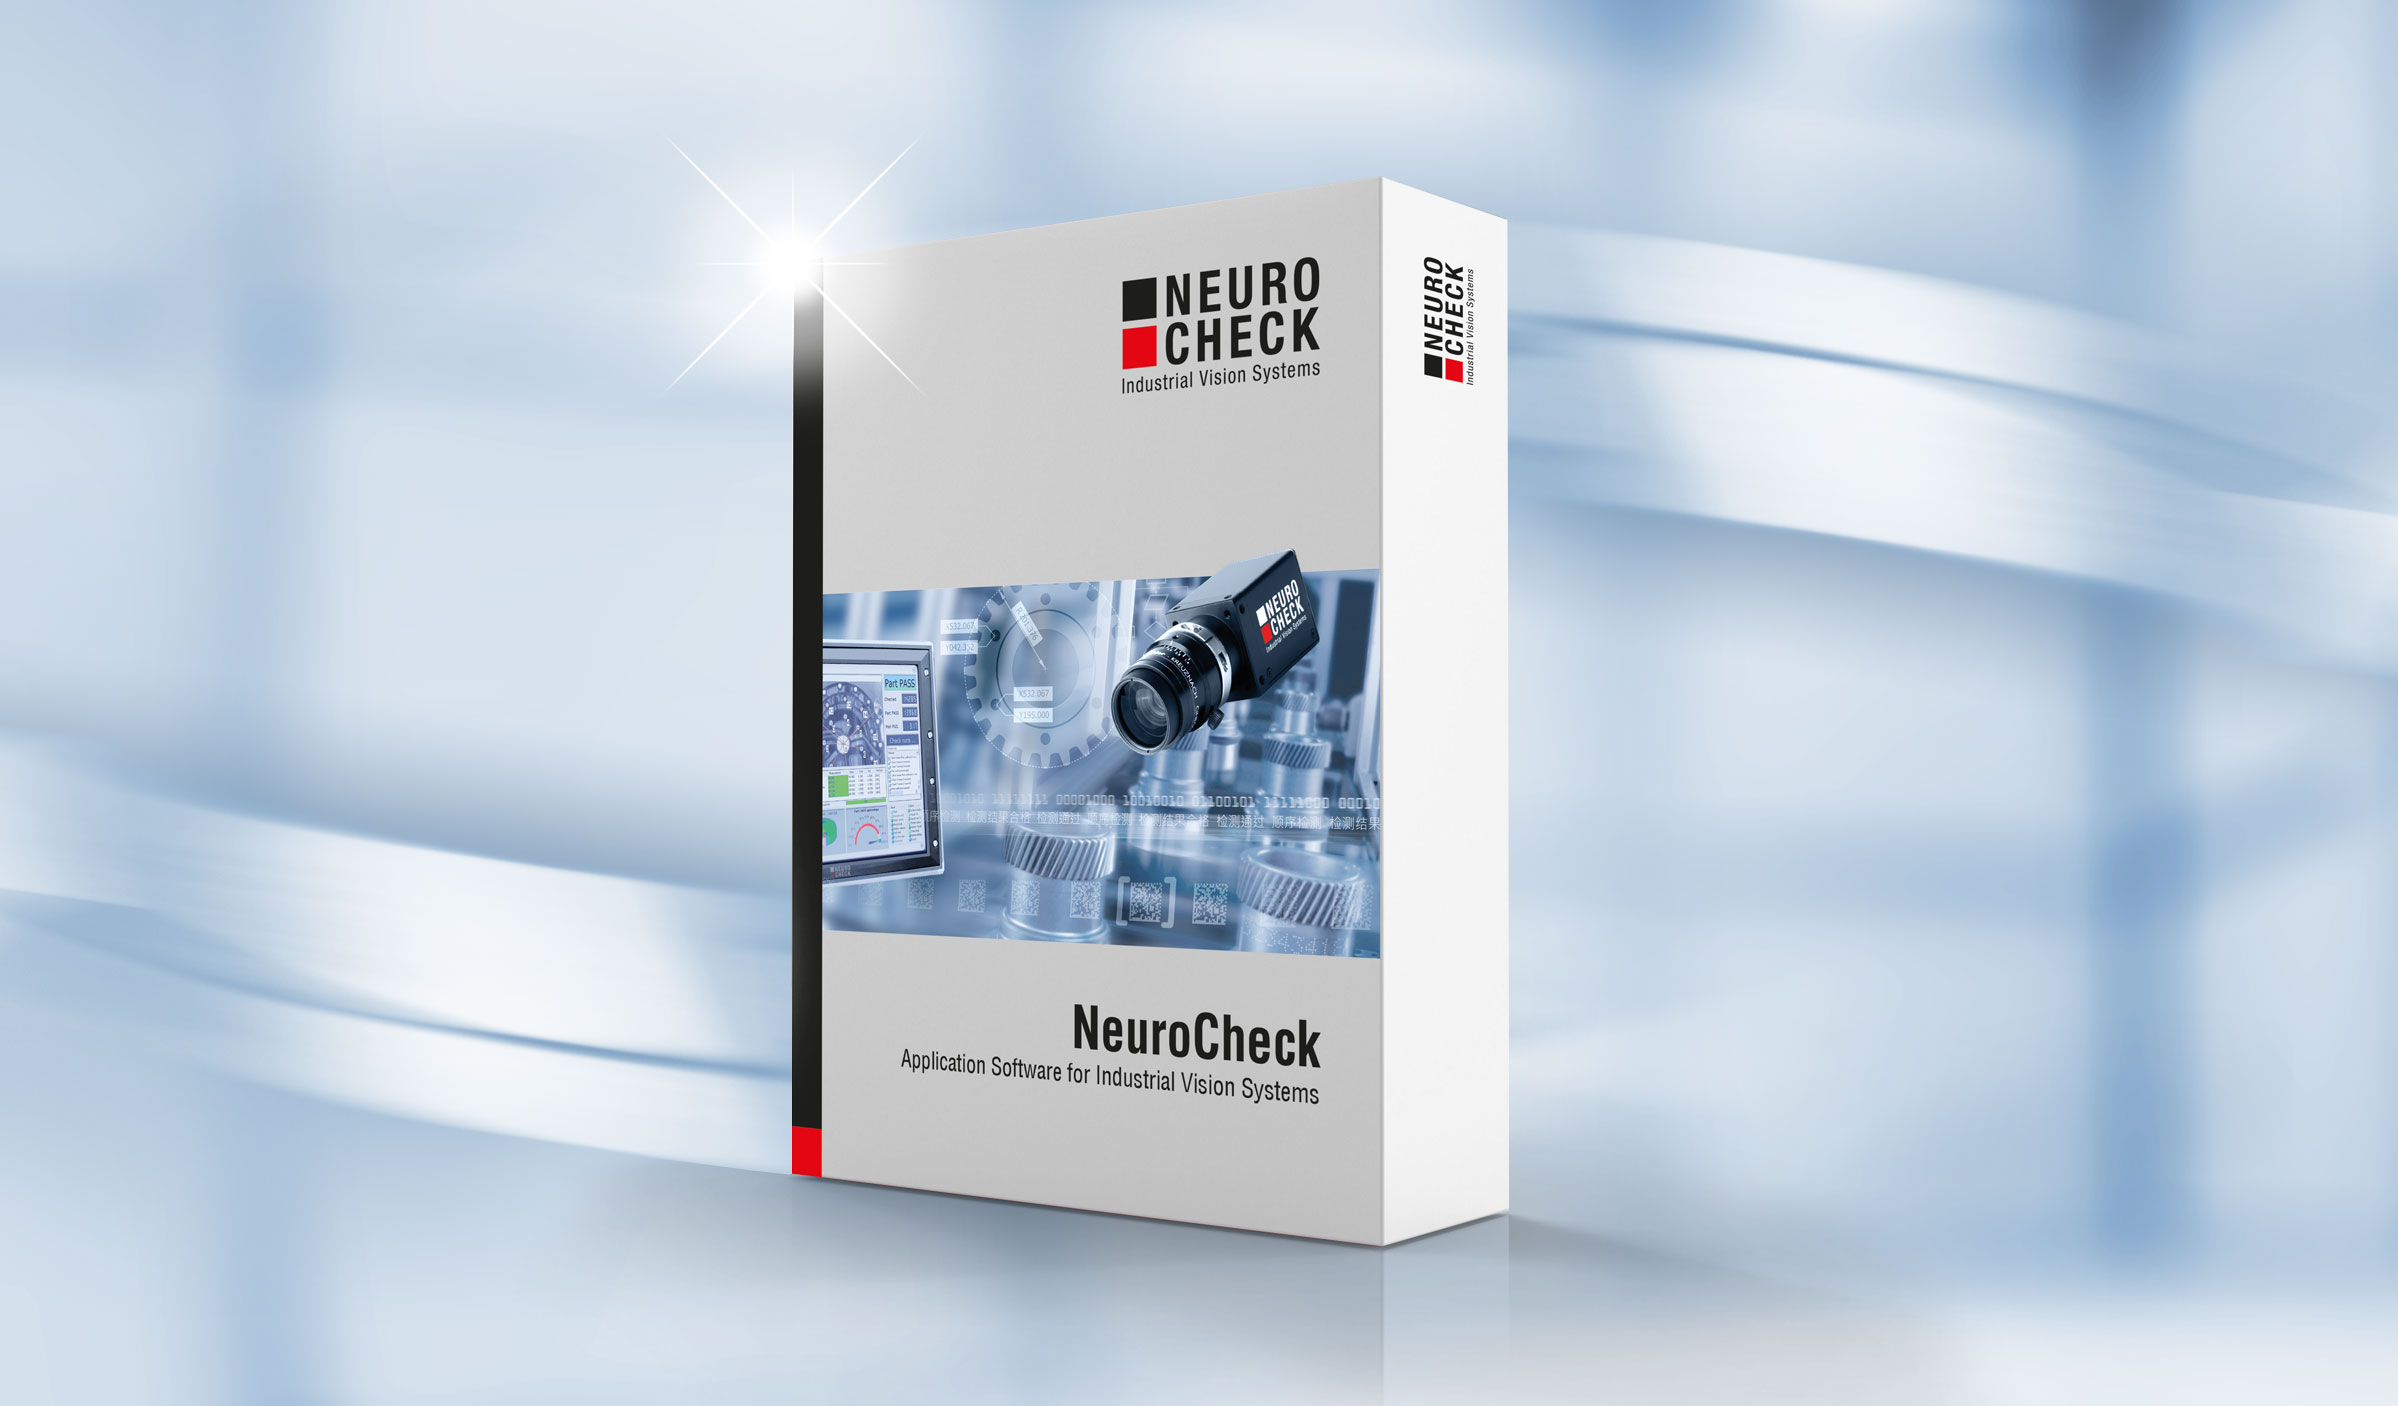 NeuroCheck Business Unit Sofware (Image © NeuroCheck)